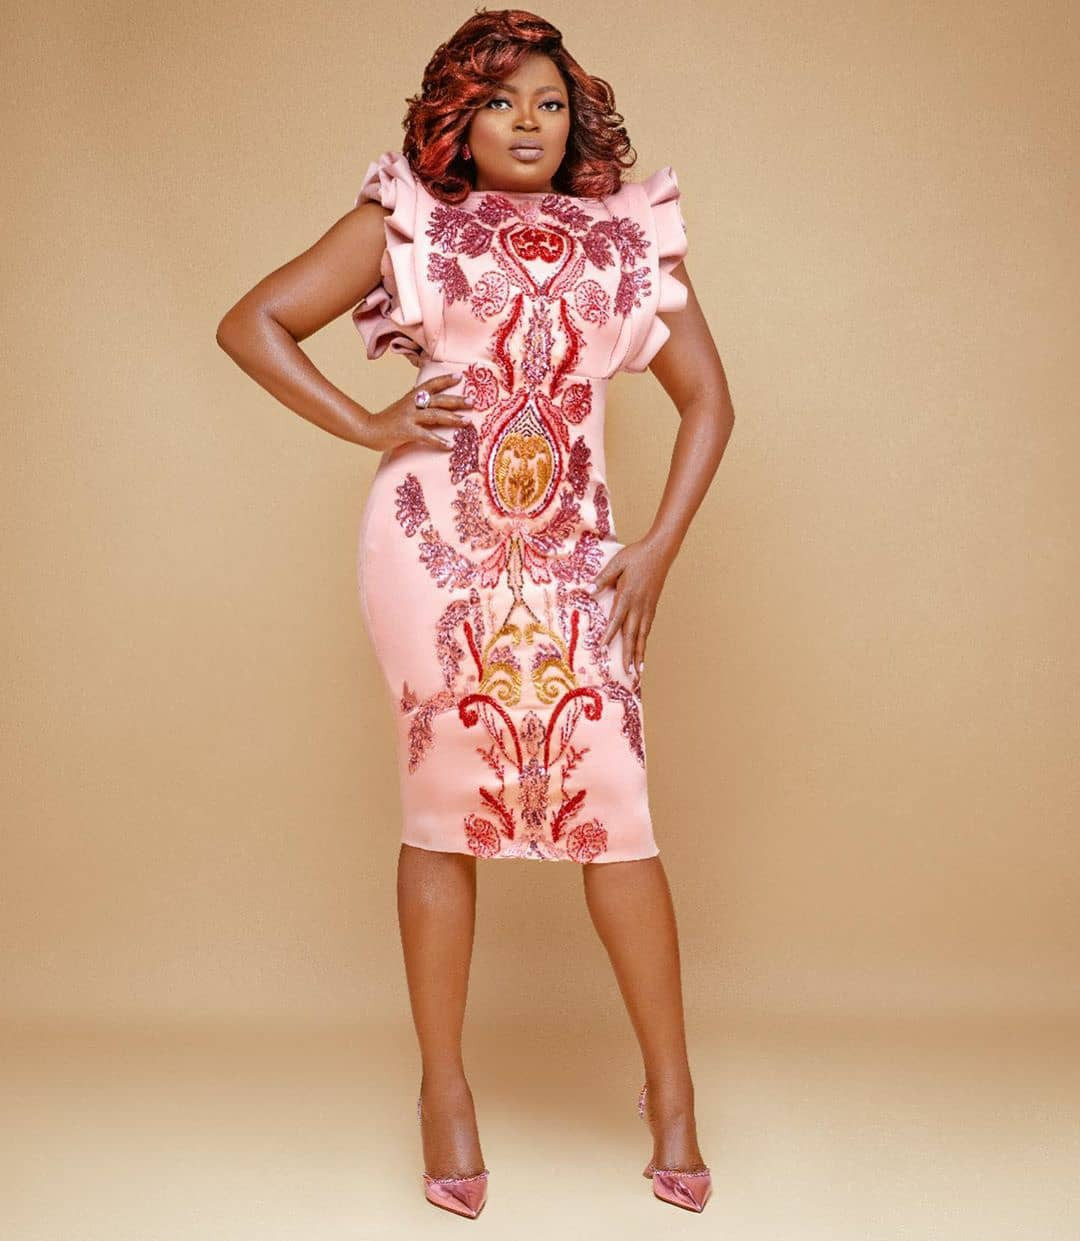 Funke Akindele-Bello shares stunning new photos as she turns 43